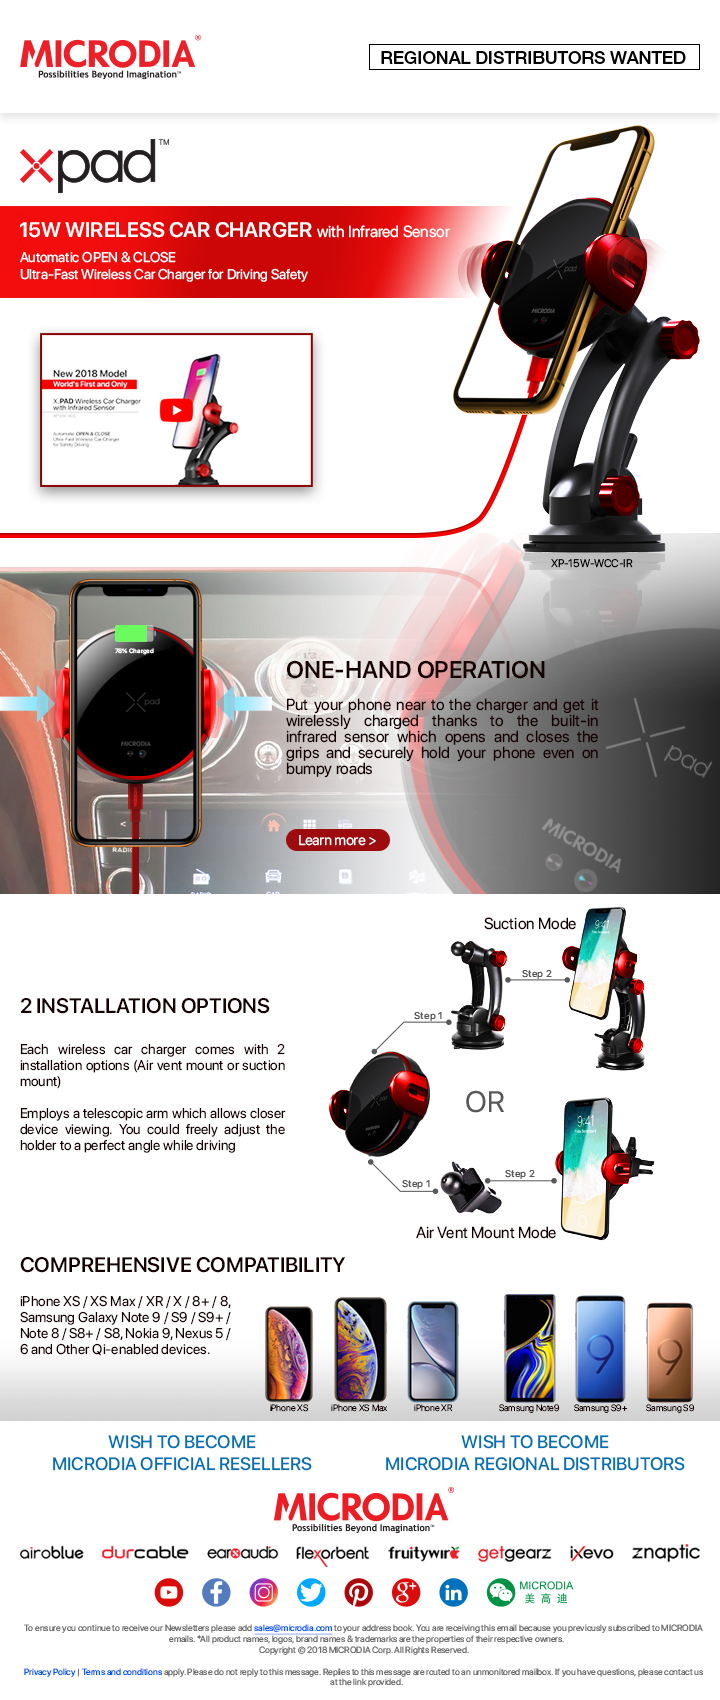 Drive Safely with ROBOTIC Auto Open